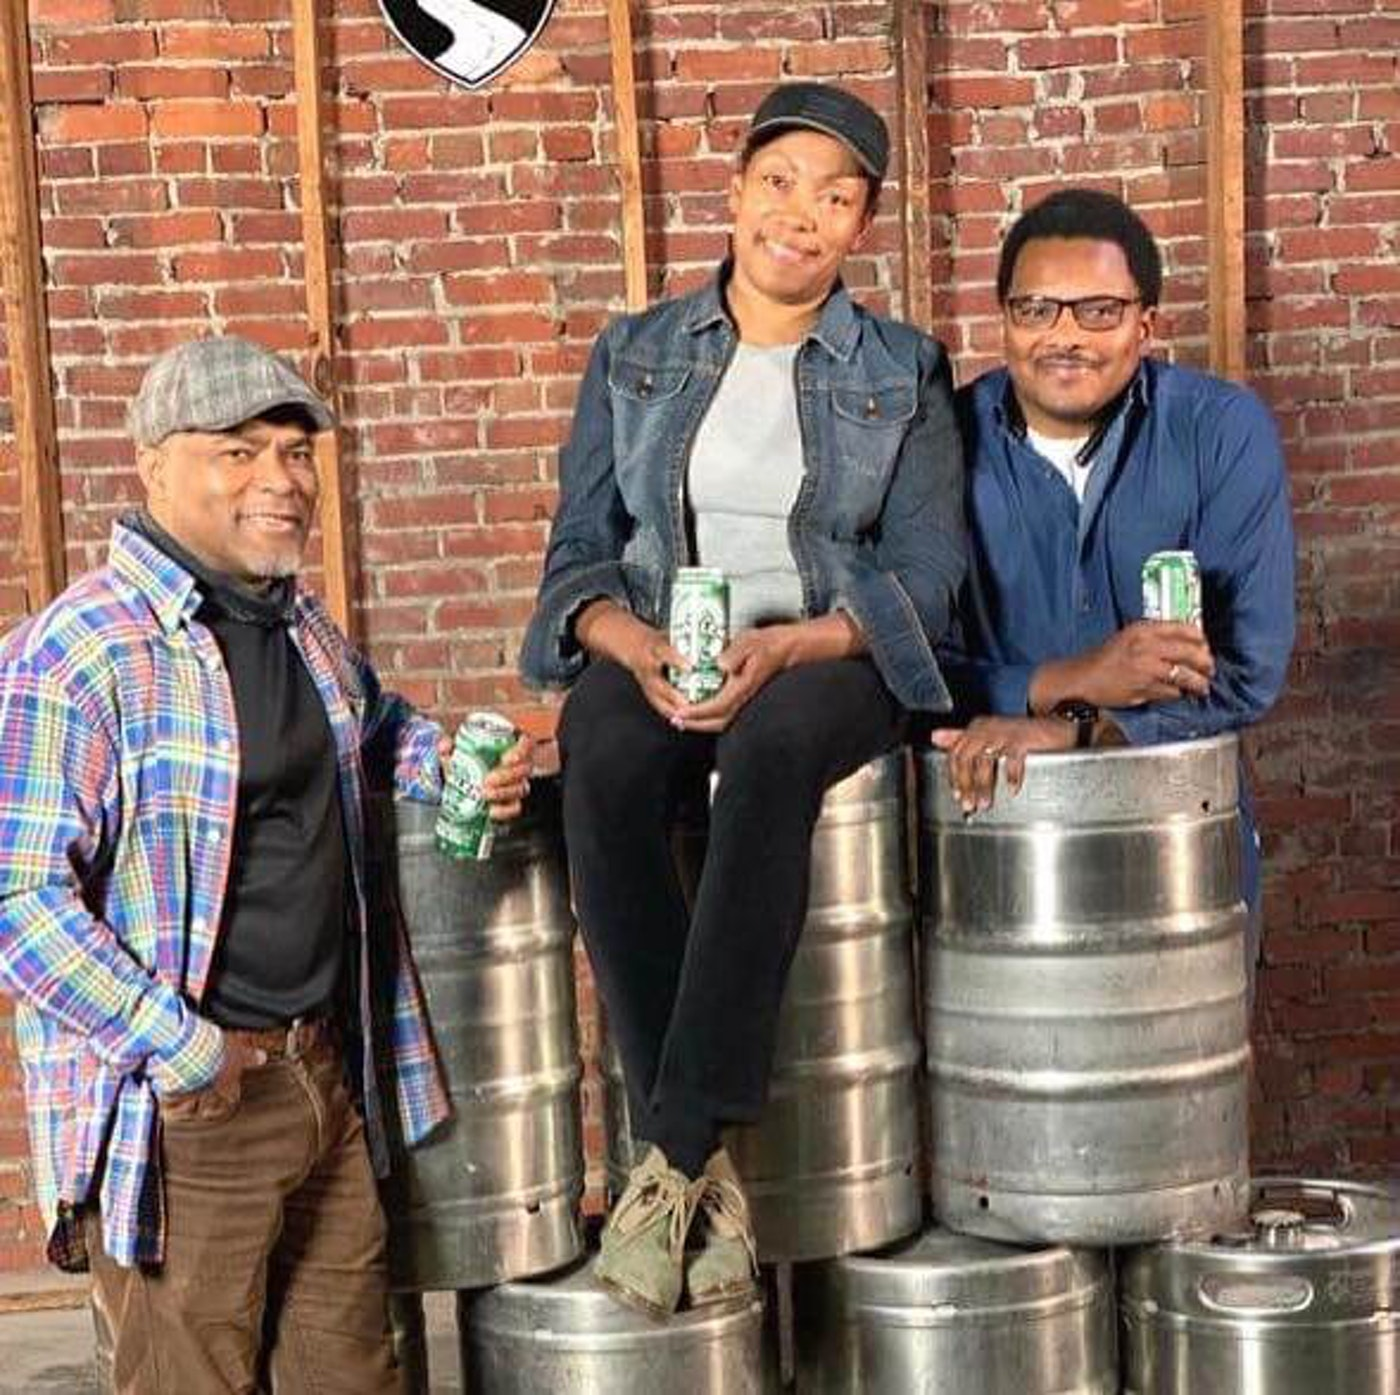 Carl (left) and Pernell Beatty (right) flank their sister Celeste, the owner of Harlem Brew South, in her taproom. The warehouse is the site of Operation Dixie, a historical and successful labor campaign in 1946. More than 10,000 tobacco workers, mostly women, gathered from around the state and voted to unionize for better working conditions. Harlem Brew's lager is named '1946' in tribute.